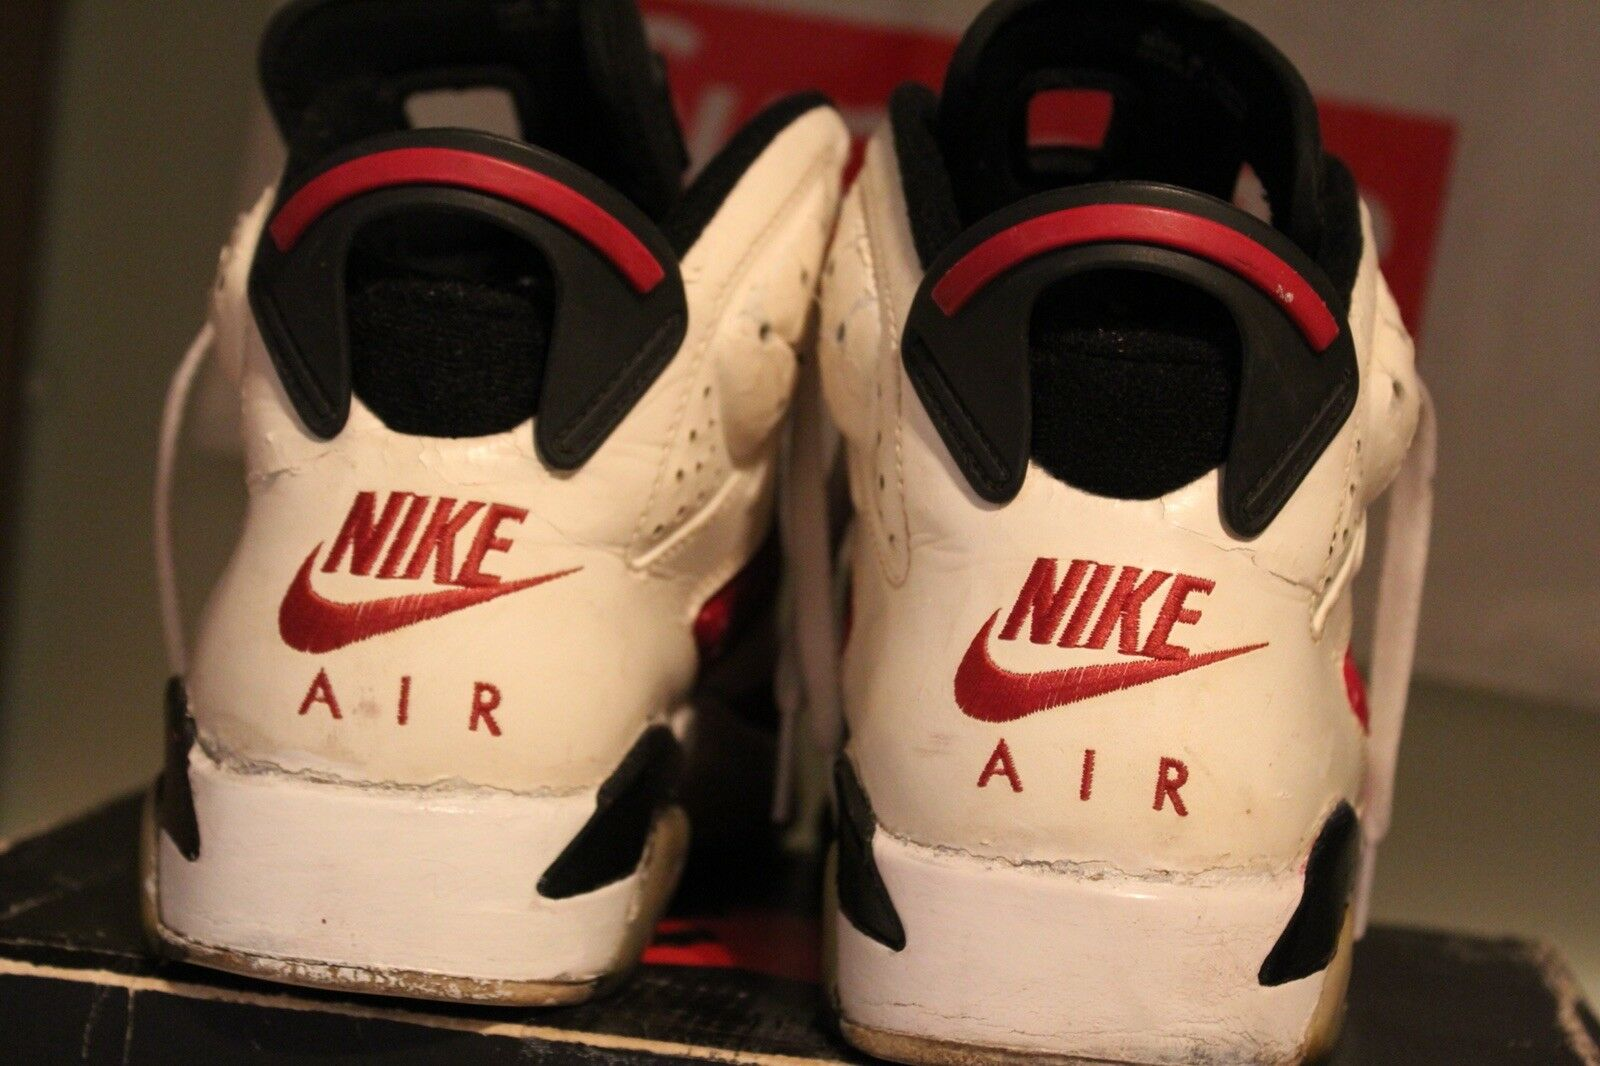 1991 OG Jordan Carmine 6 Soleswapped Comfortable Comfortable and good-looking